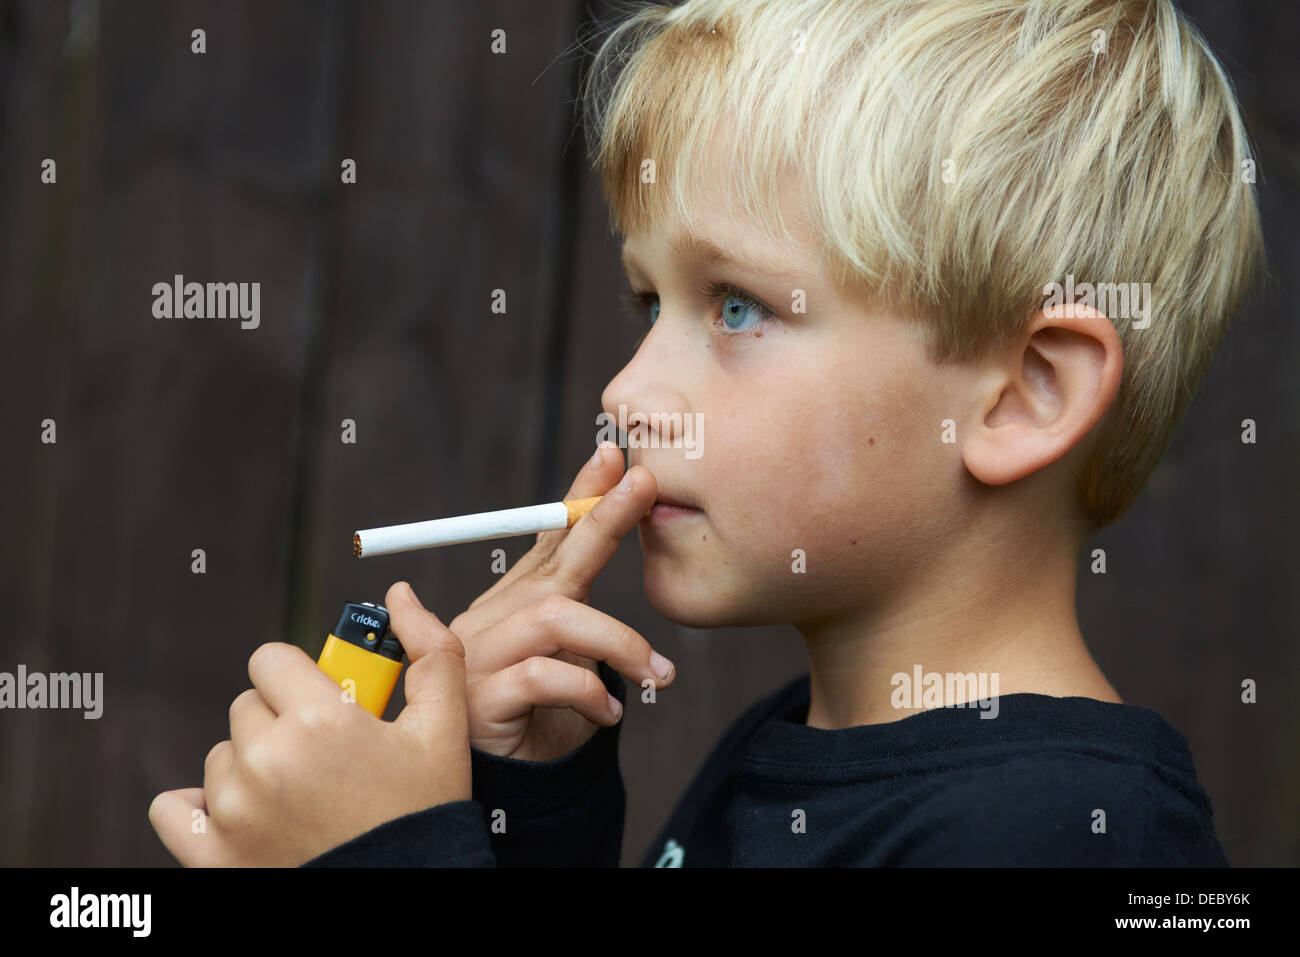 child blond boy smoking cigarette   young smoker stock